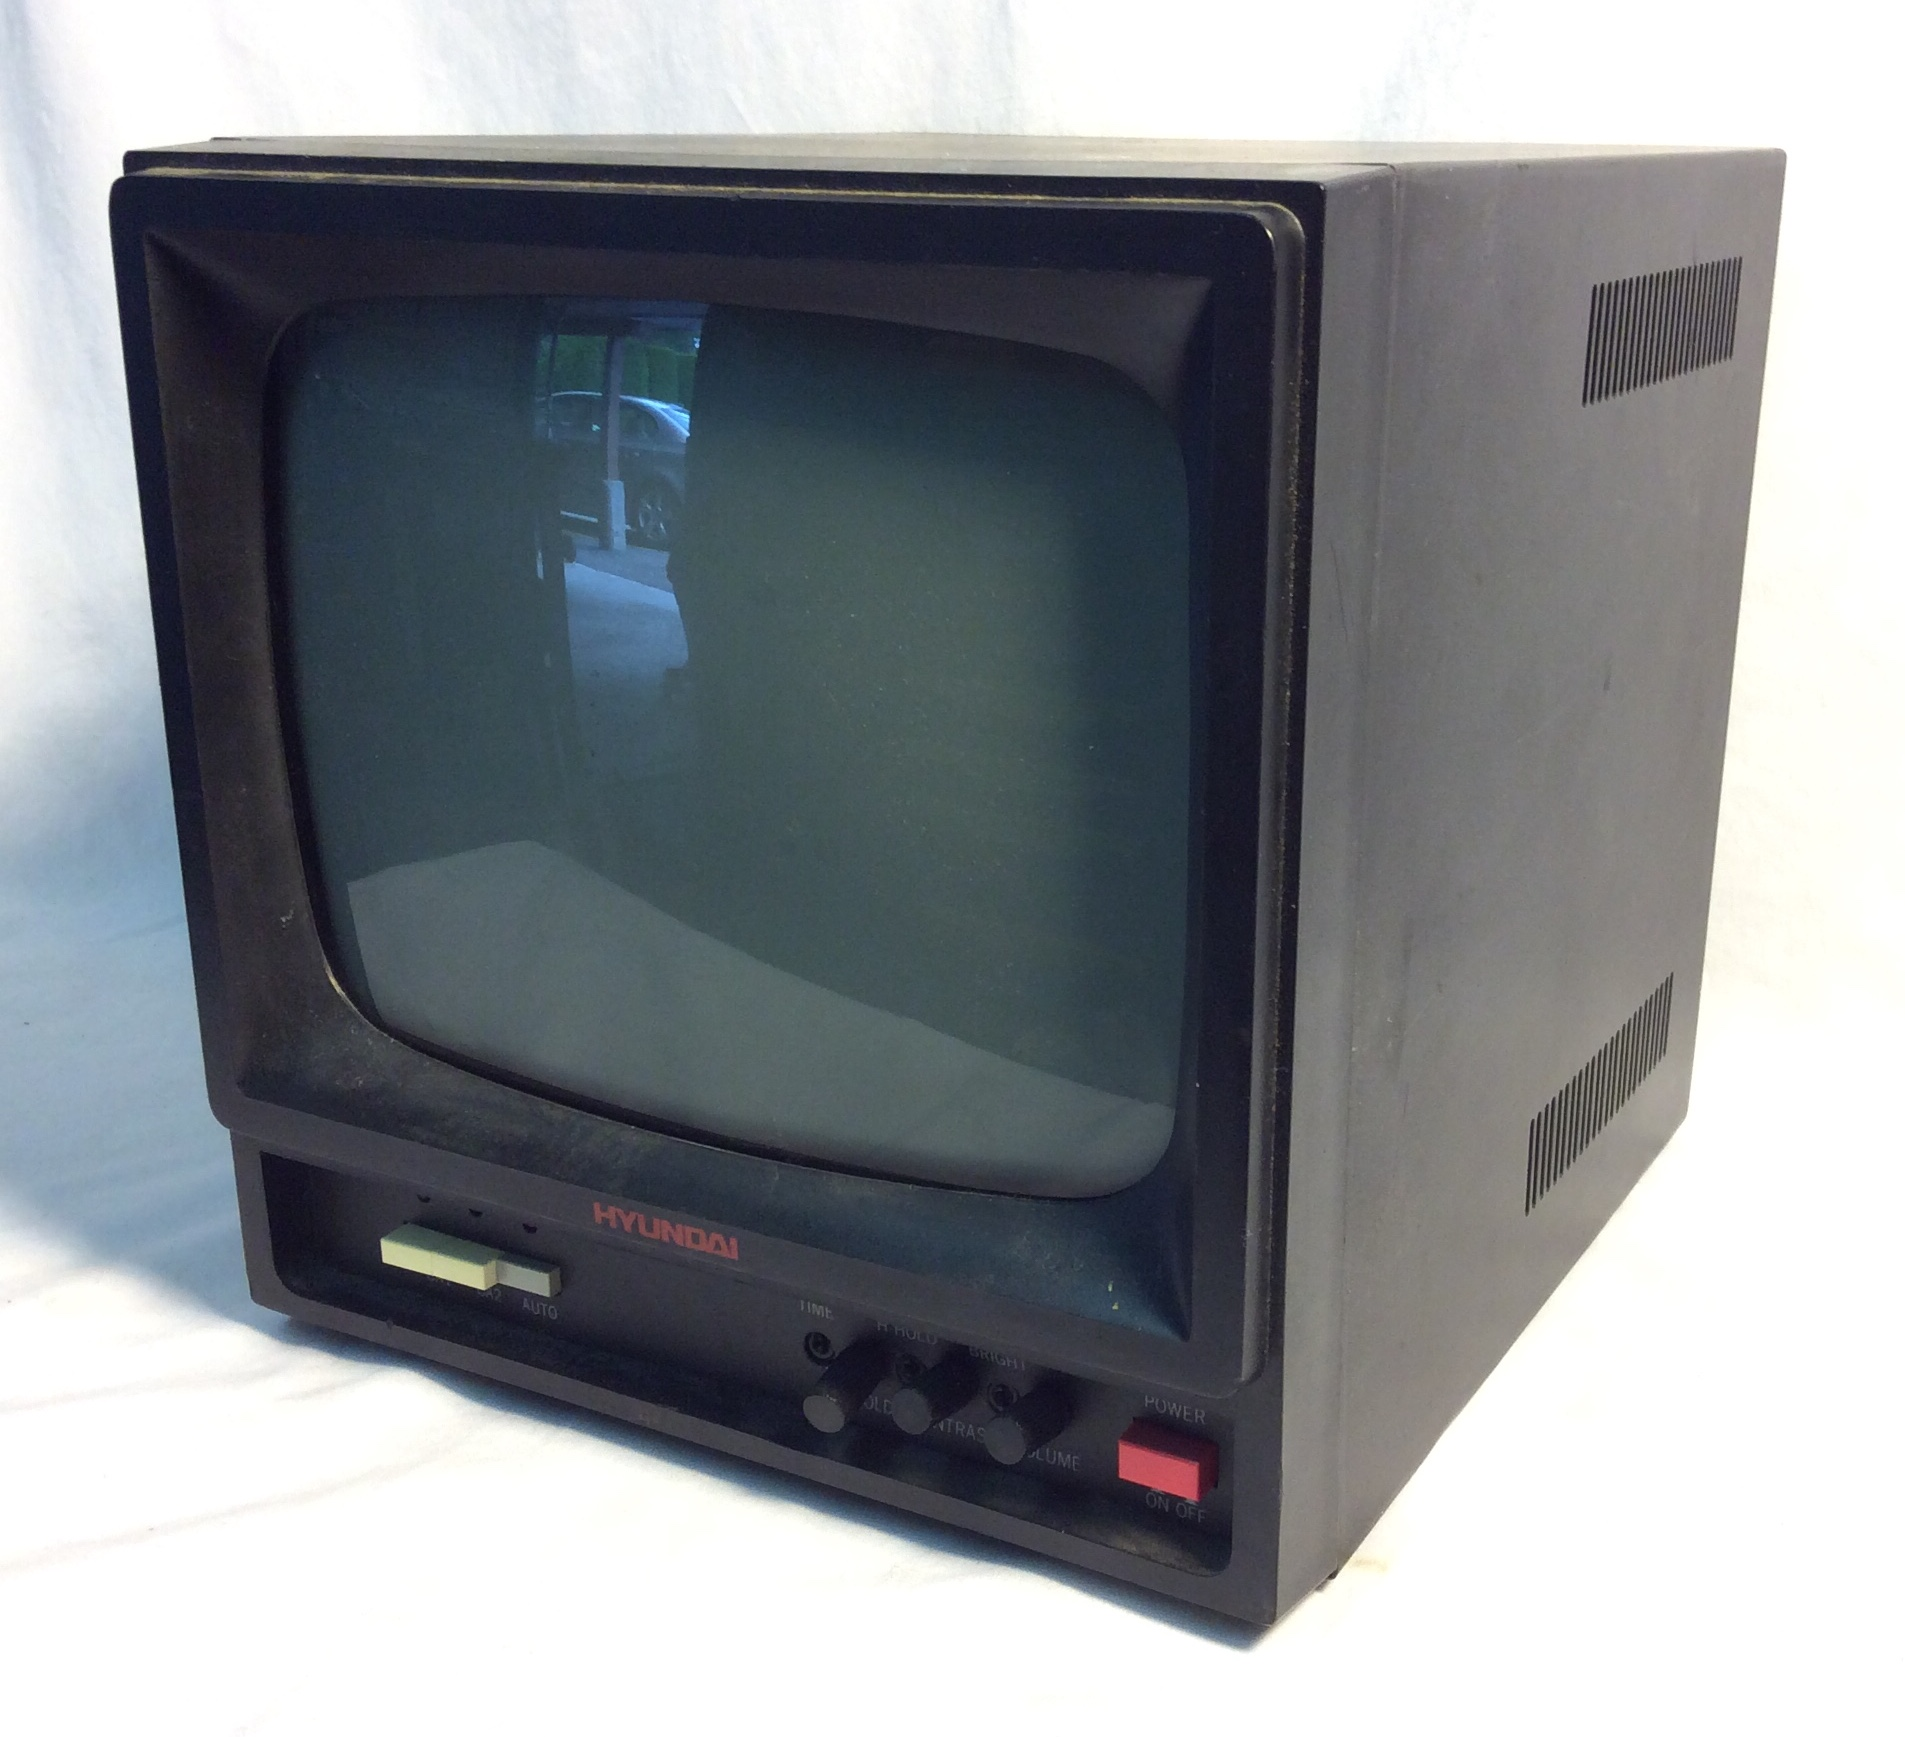 "Hyundai TV Monitor 1990 black metal case 9""x9"" cube"